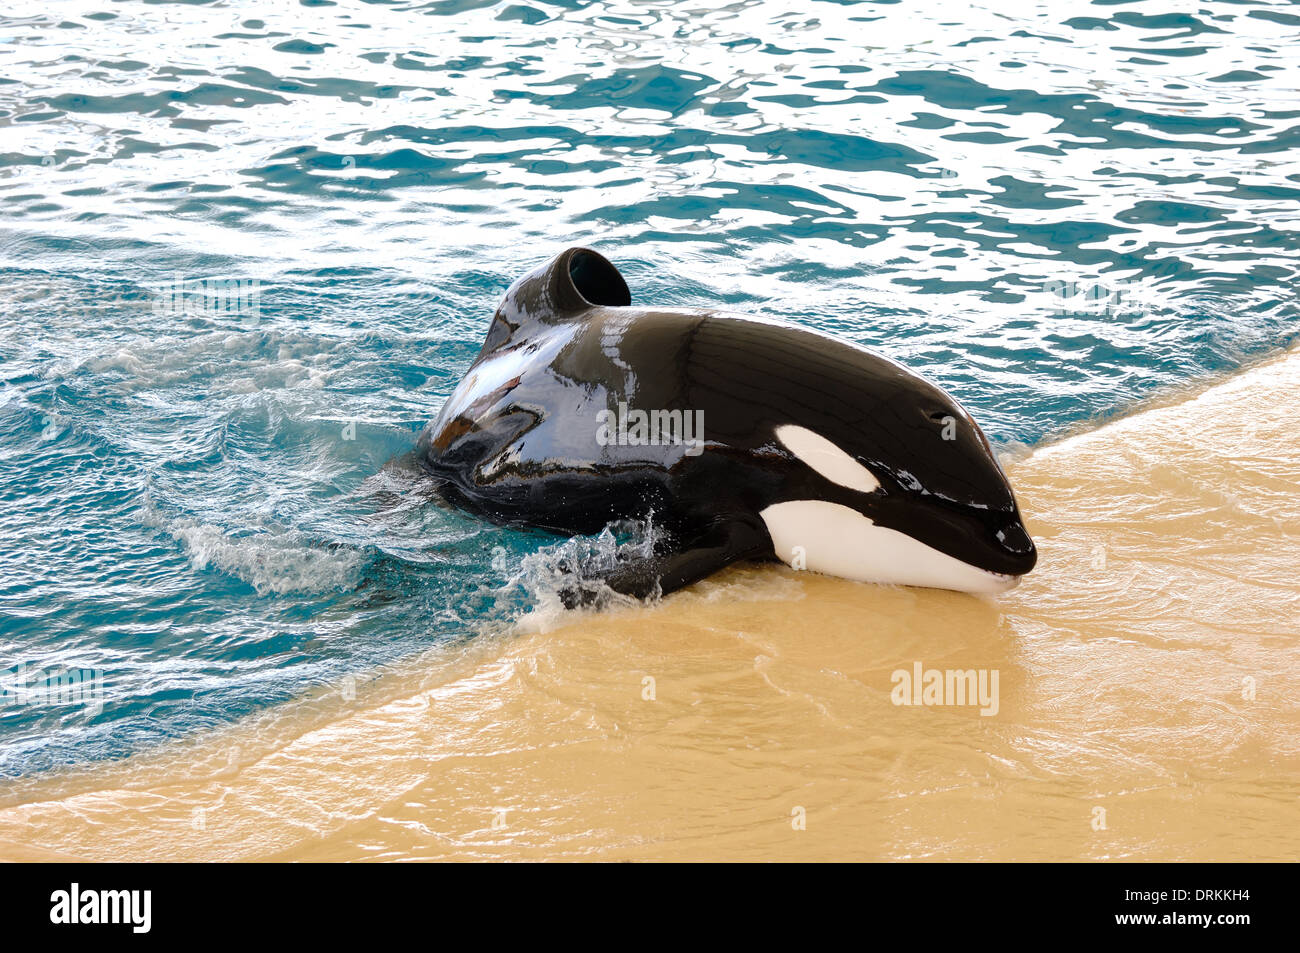 Killer whale in a water world making fun. - Stock Image